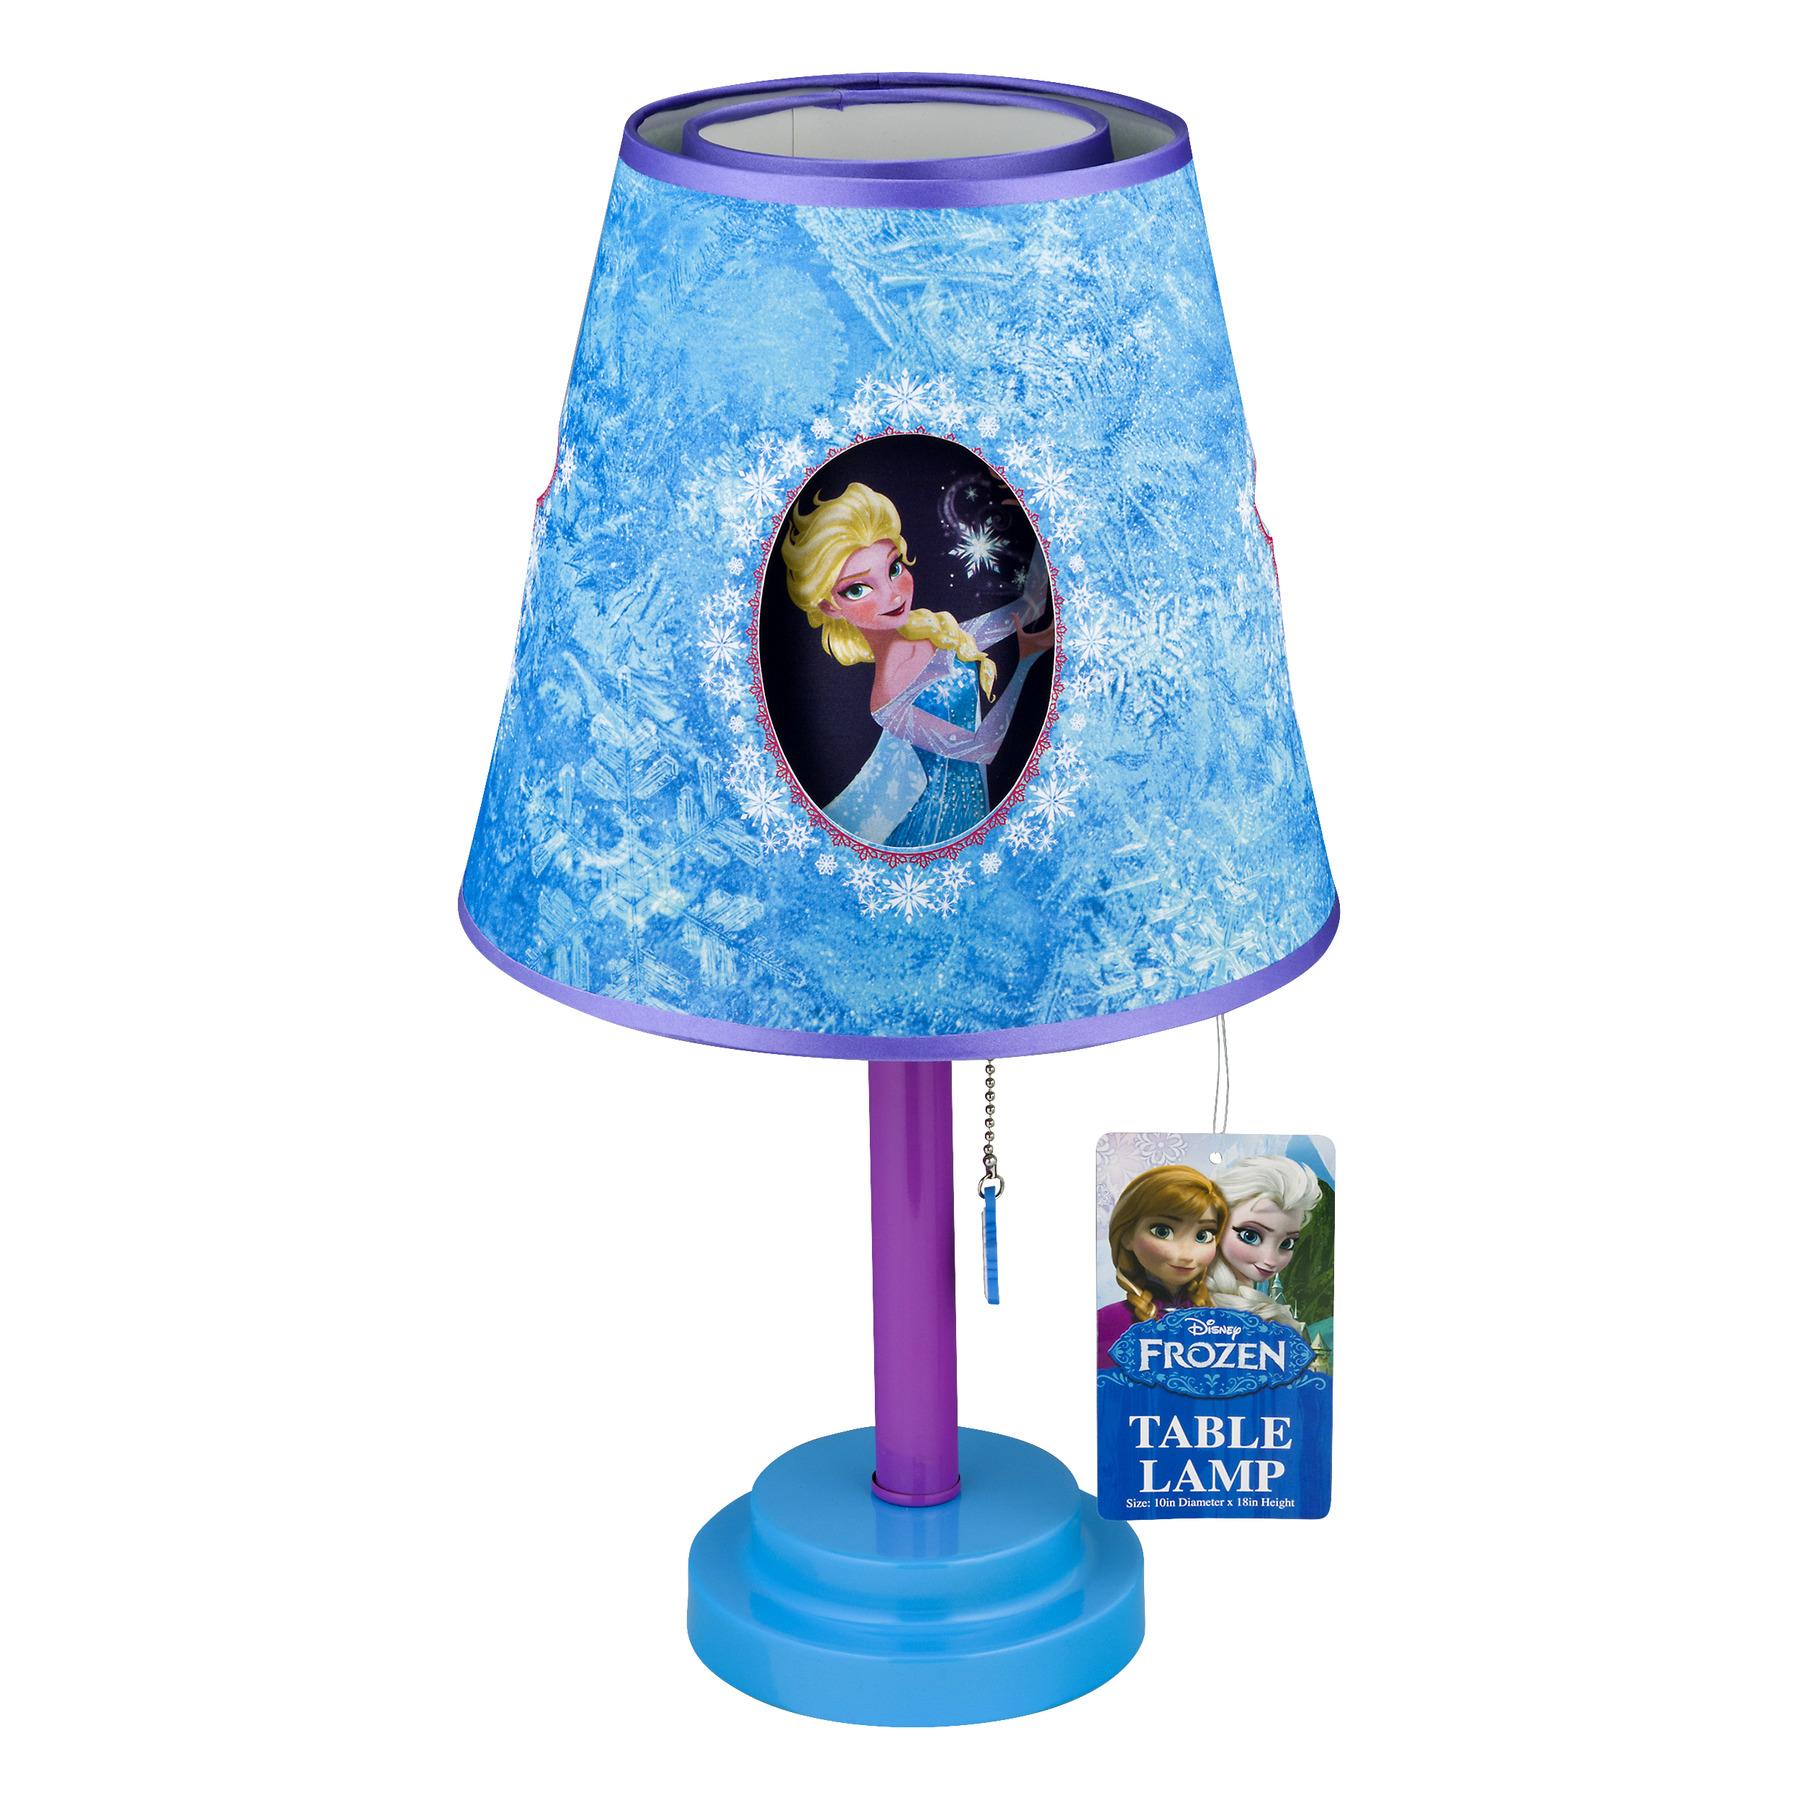 Disney Frozen Table Lamp, 1.0 CT